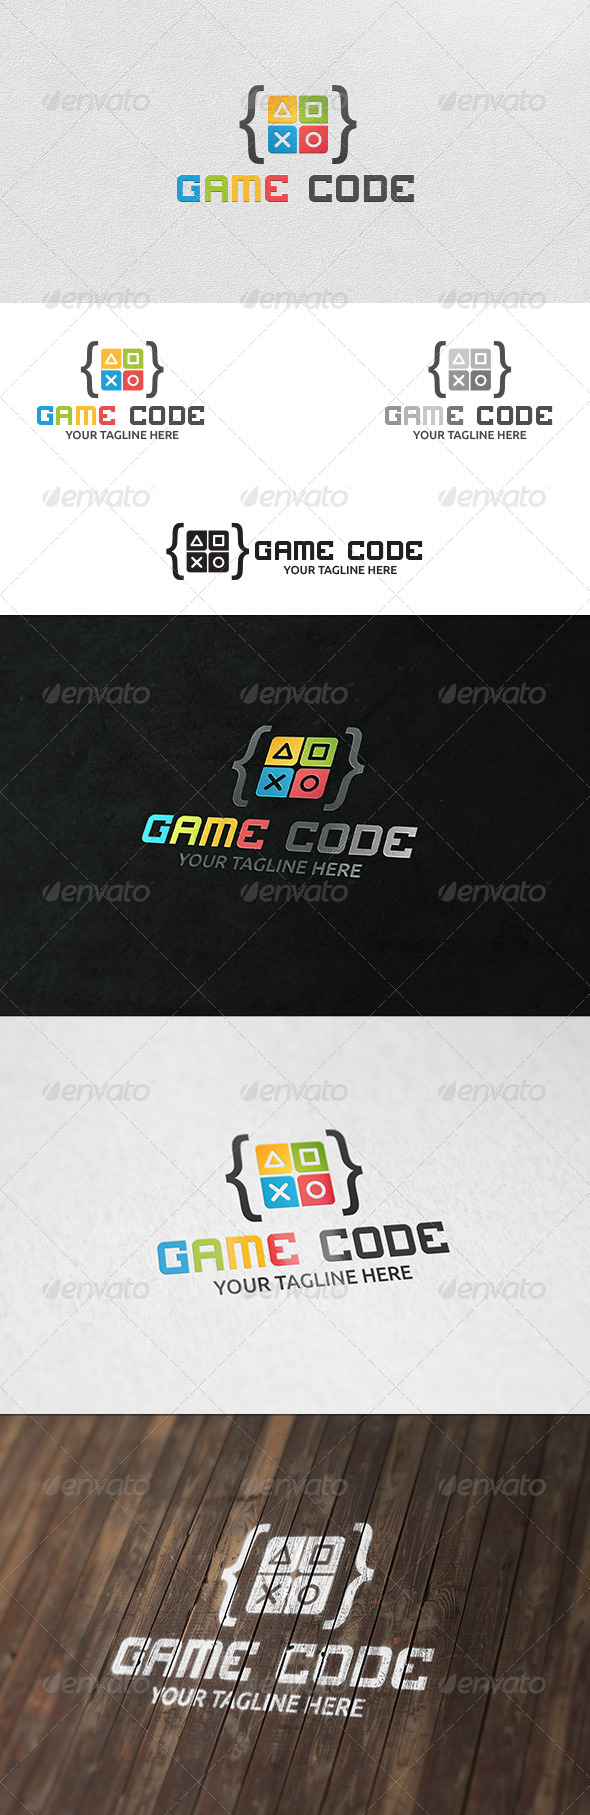 Game Code - Logo Template